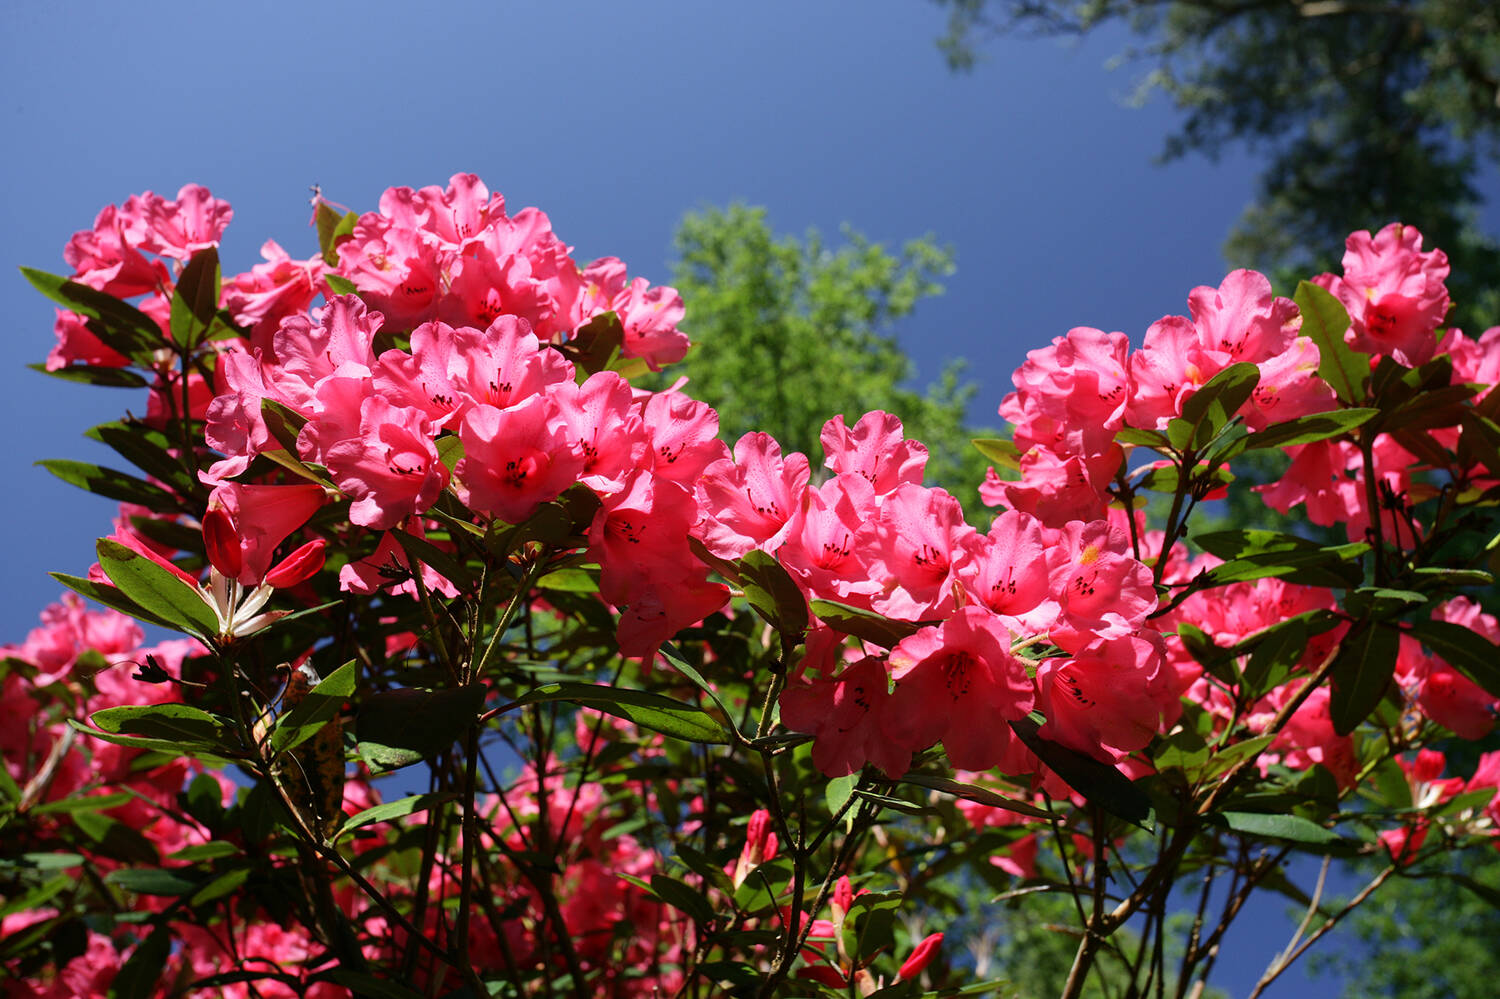 Rhododendrons in bloom at Inverewe Garden